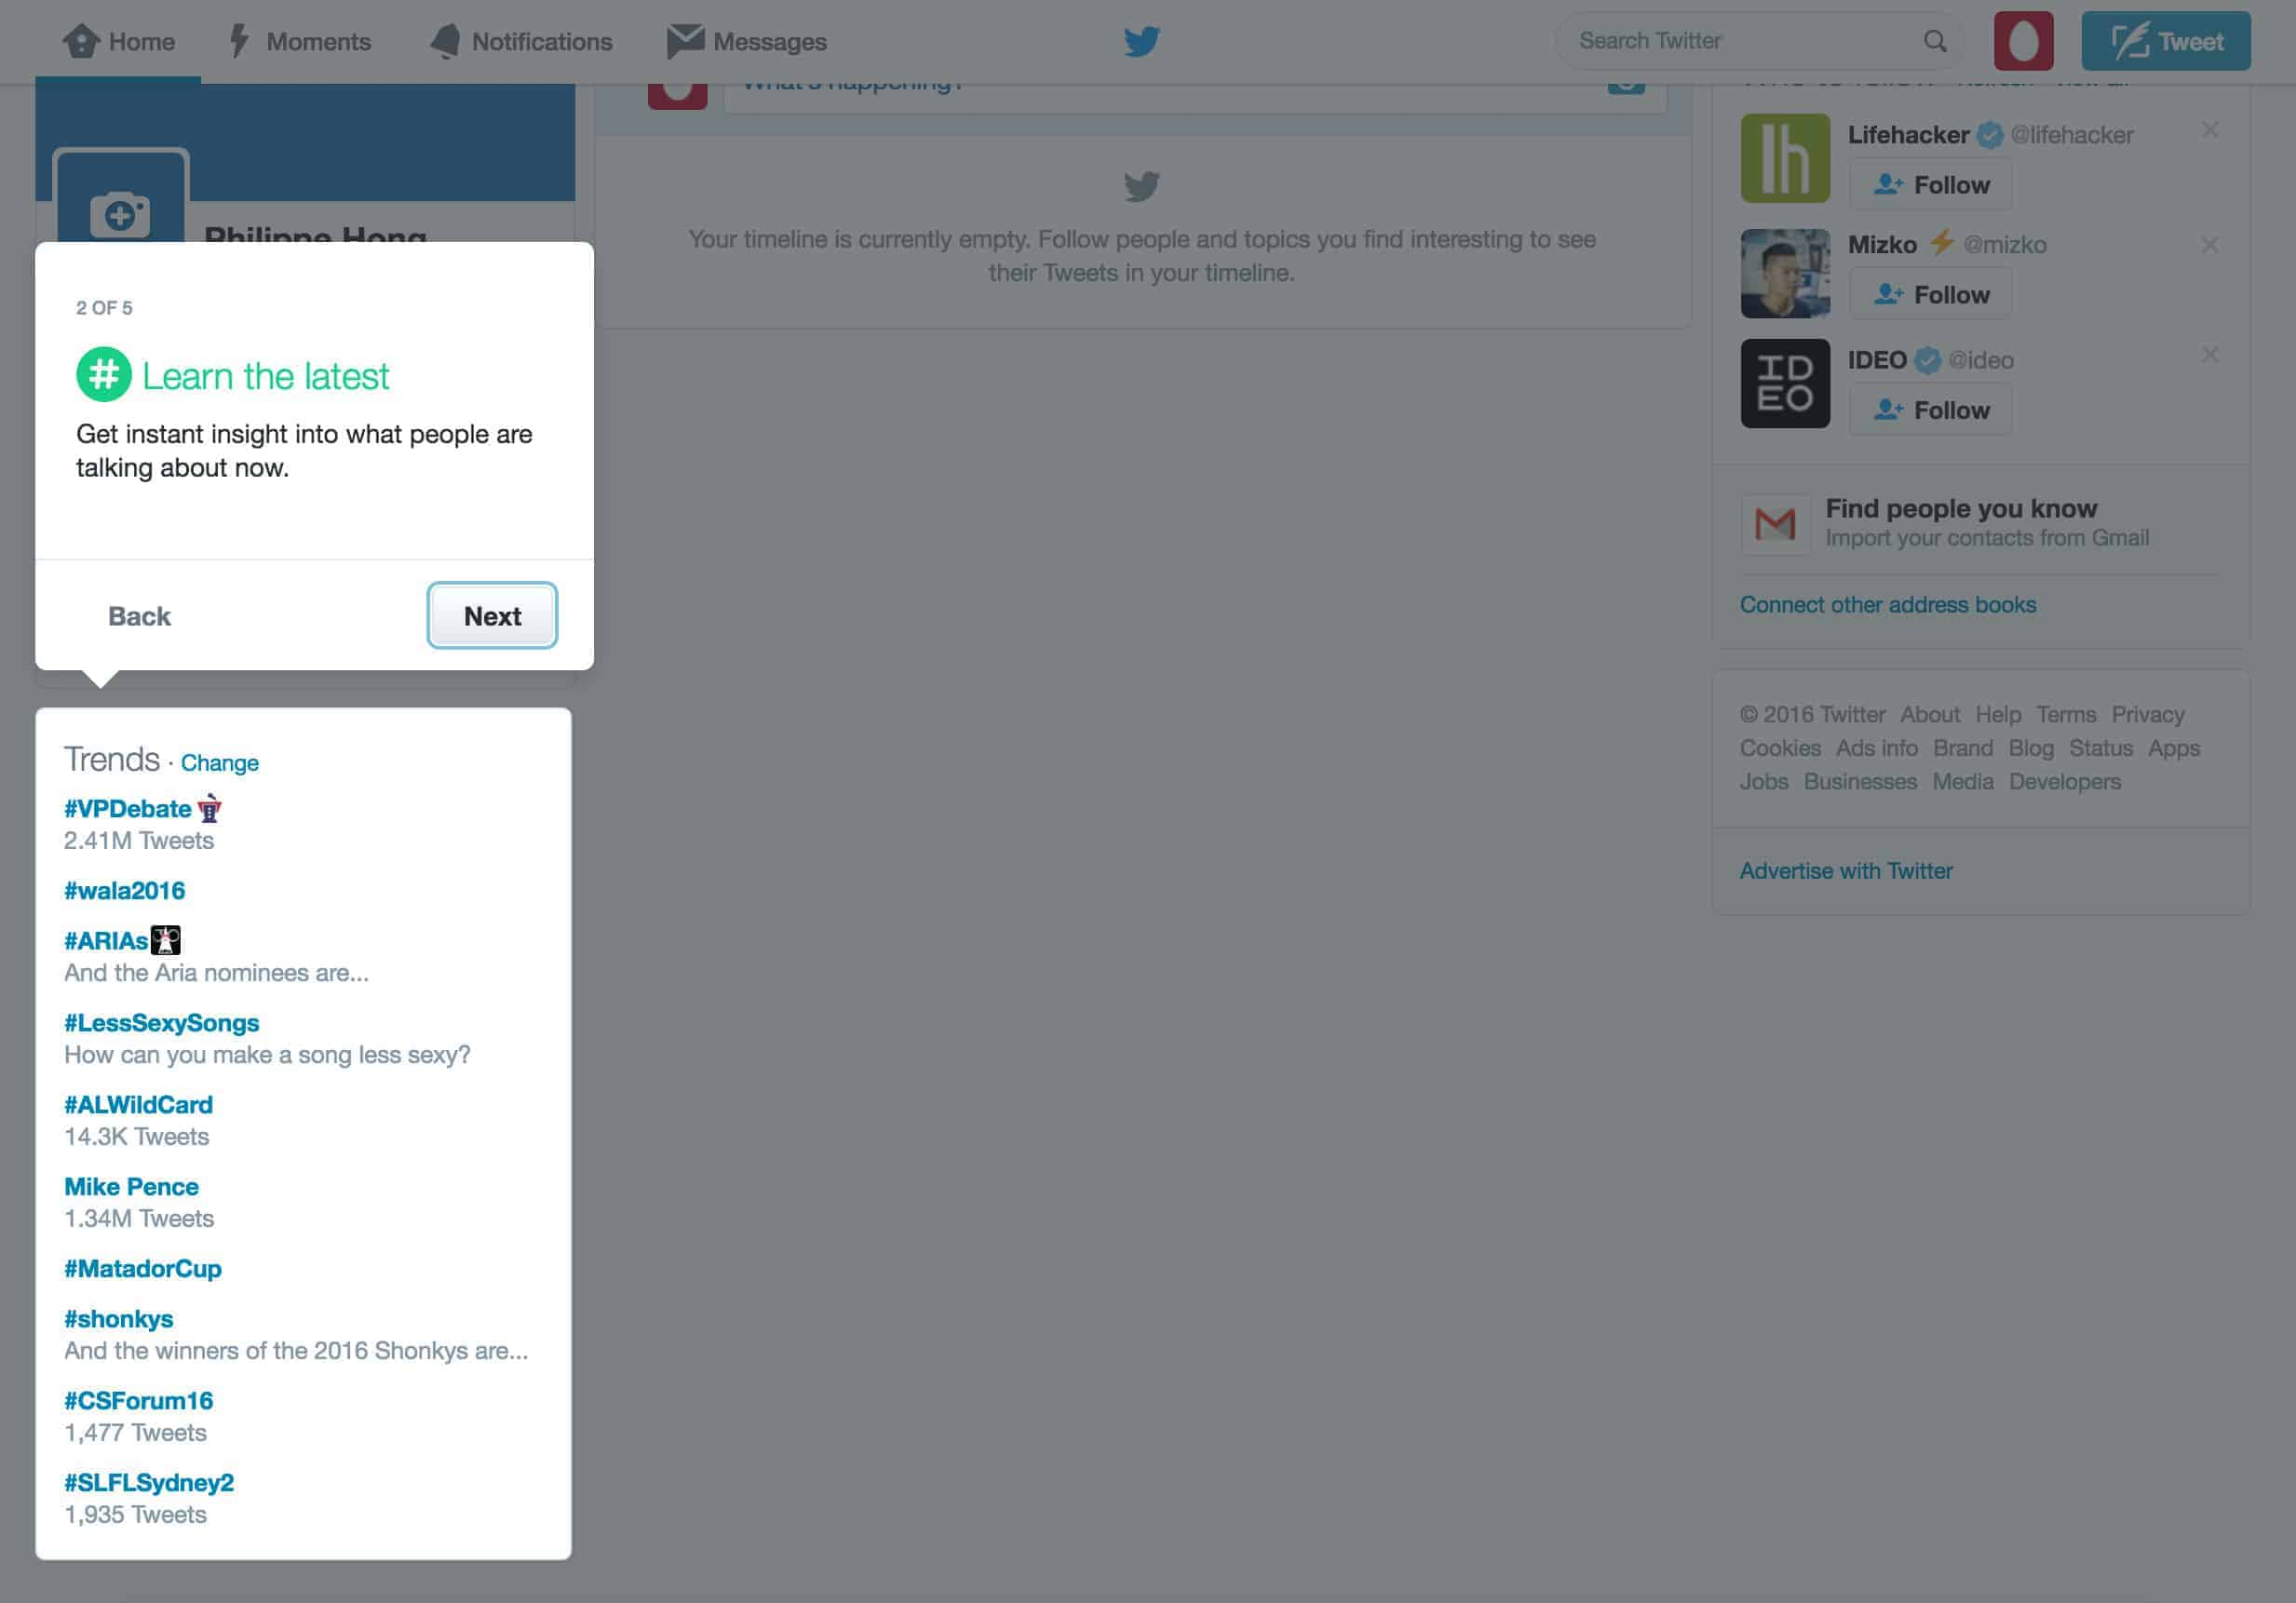 Tutorial walkthrough by Twitter from UIGarage